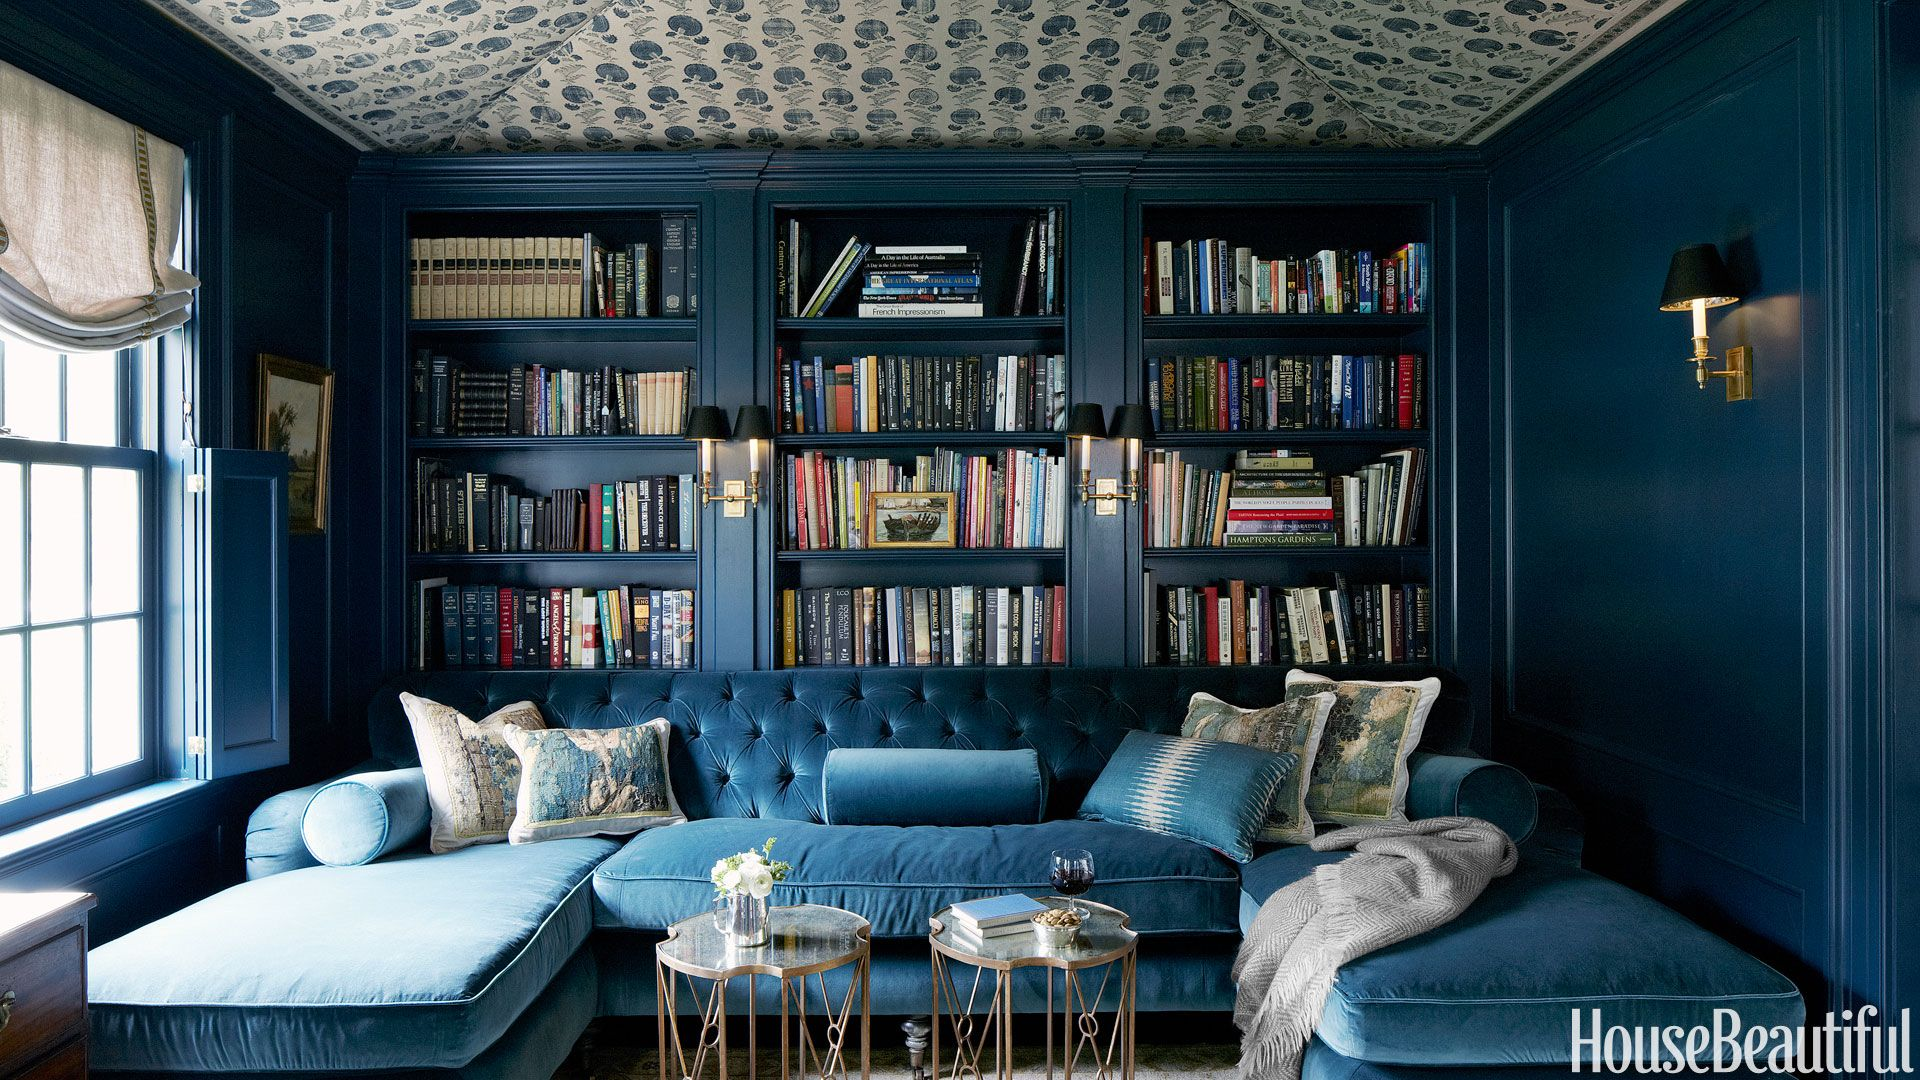 Home Library Design Prepossessing Home Library Design Ideas  Pictures Of Home Library Decor